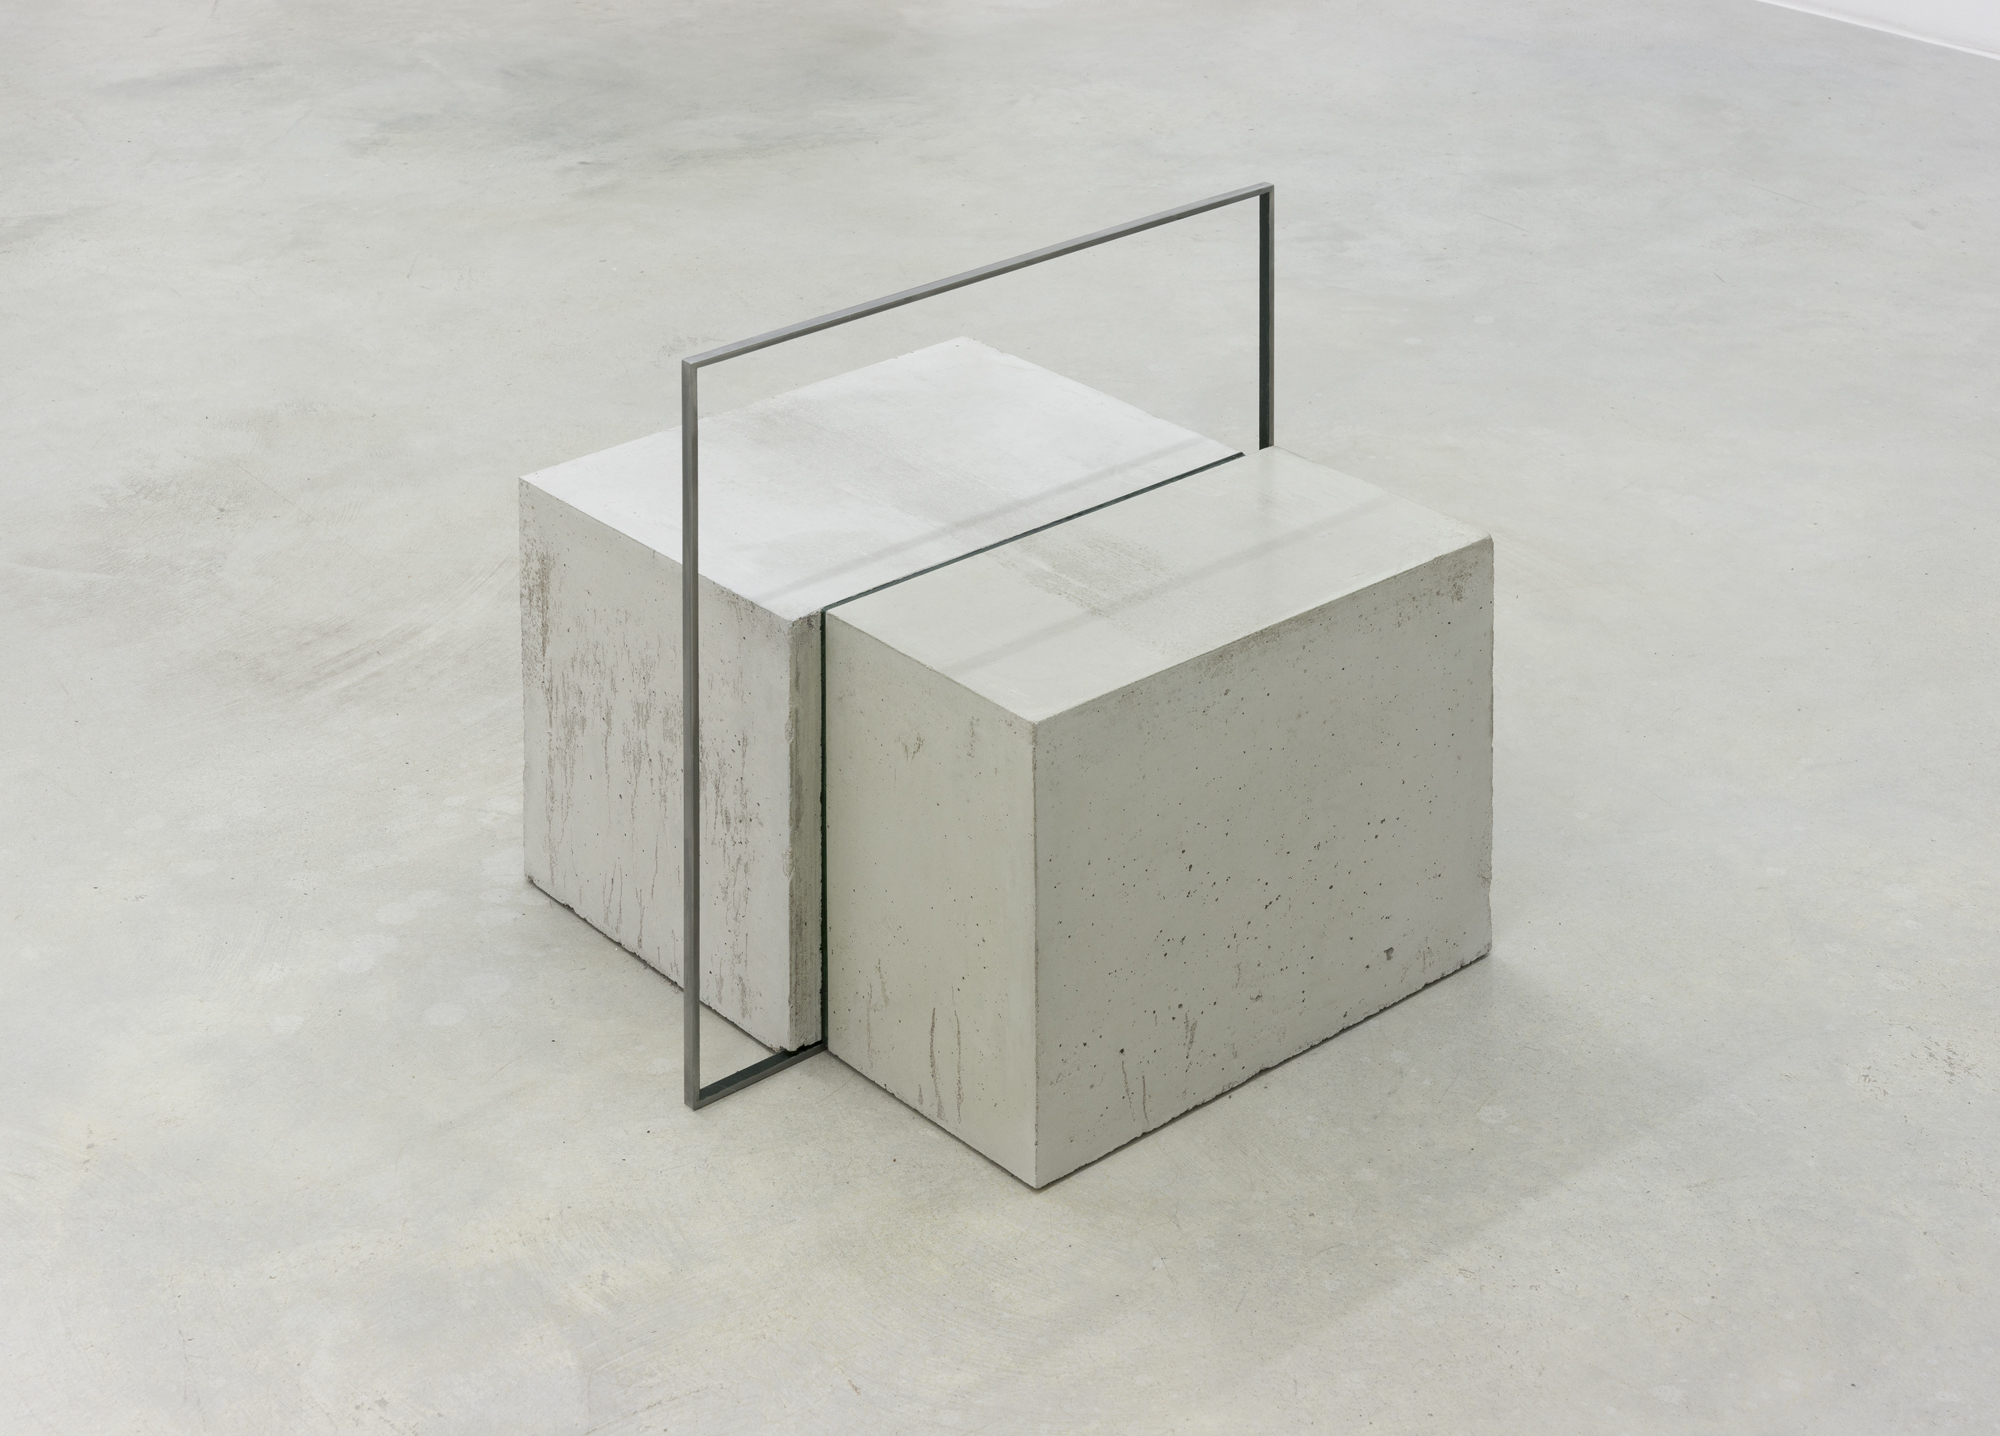 Solid Section, concrete, wax and painted iron, 50 x 50 x 50 cm, 2015